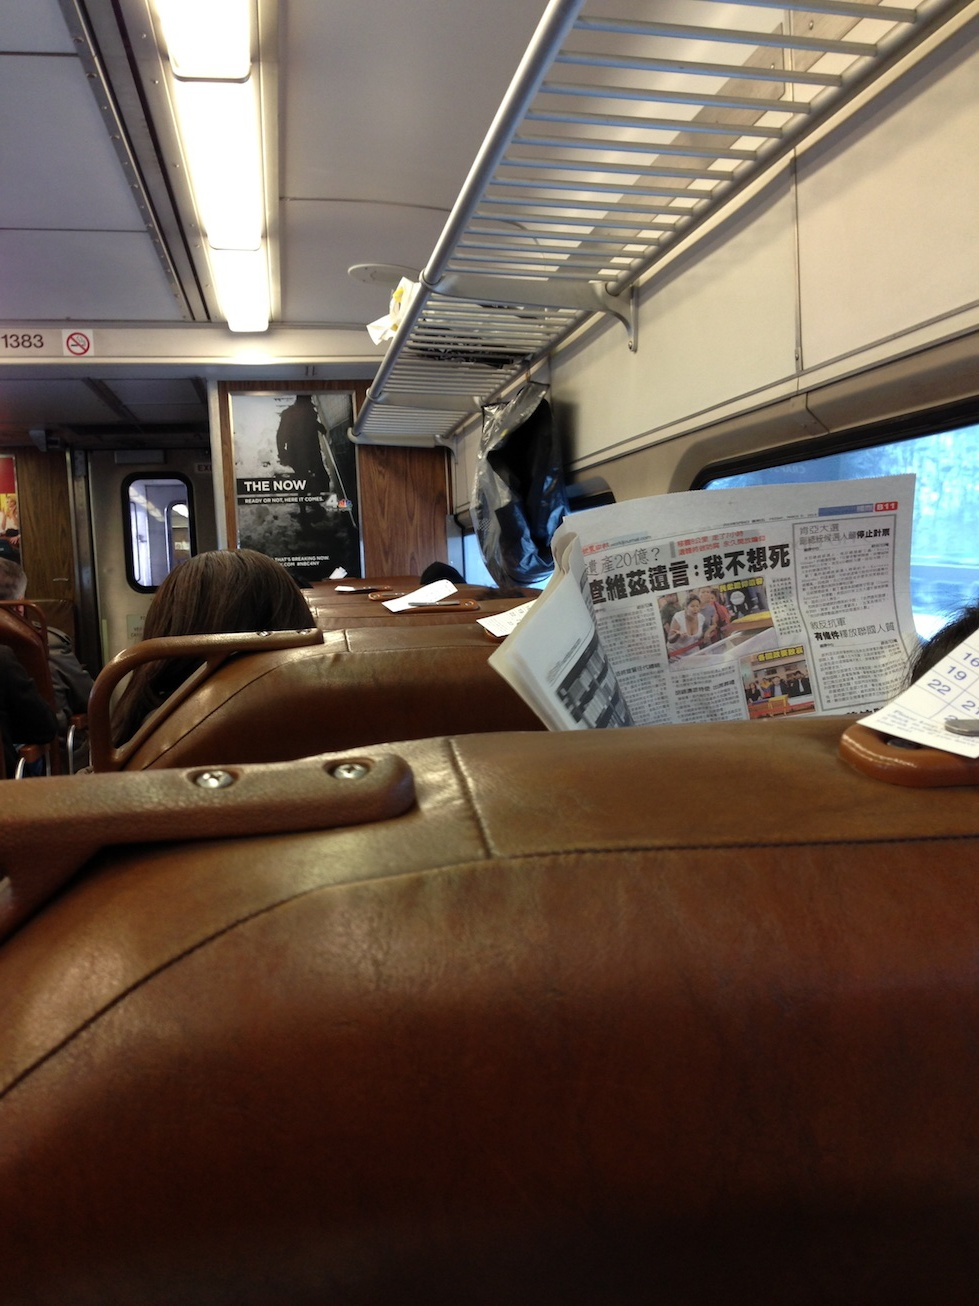 The lady in front of me on the train, and her newspaper.